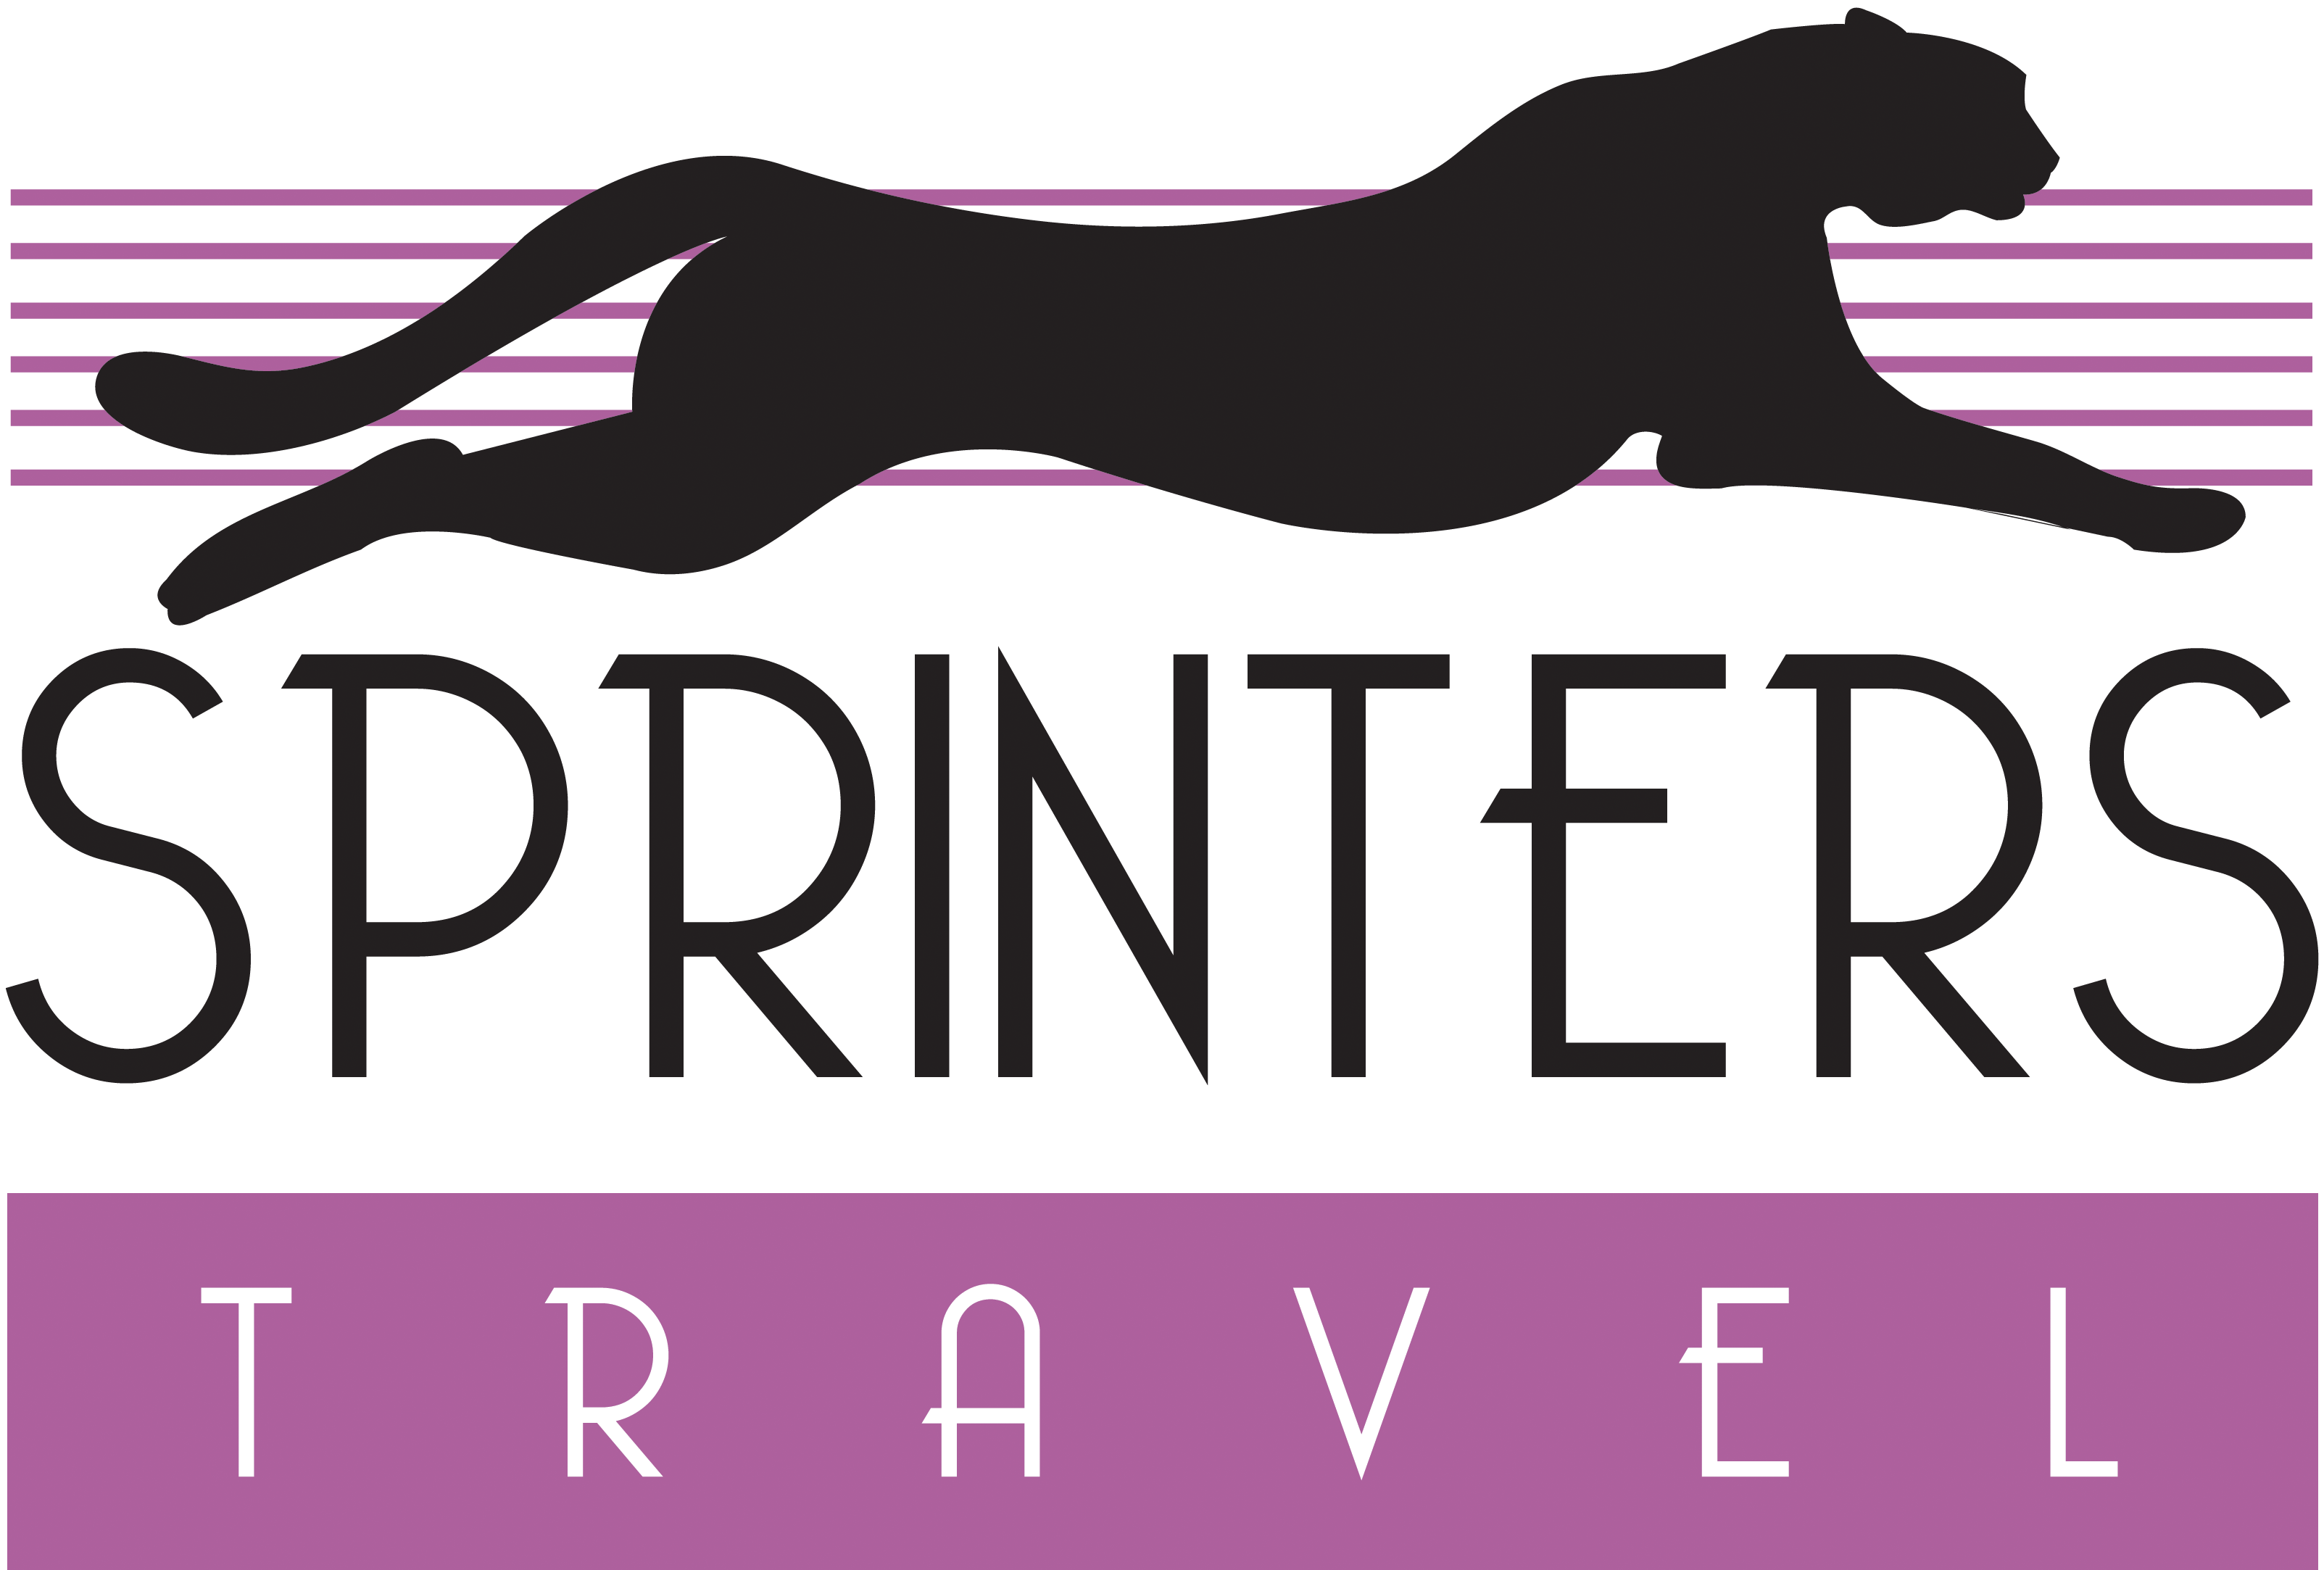 Sprinters Travel | Careers with Sprinters Travel - Sprinters Travel - Minibus hire with drivers